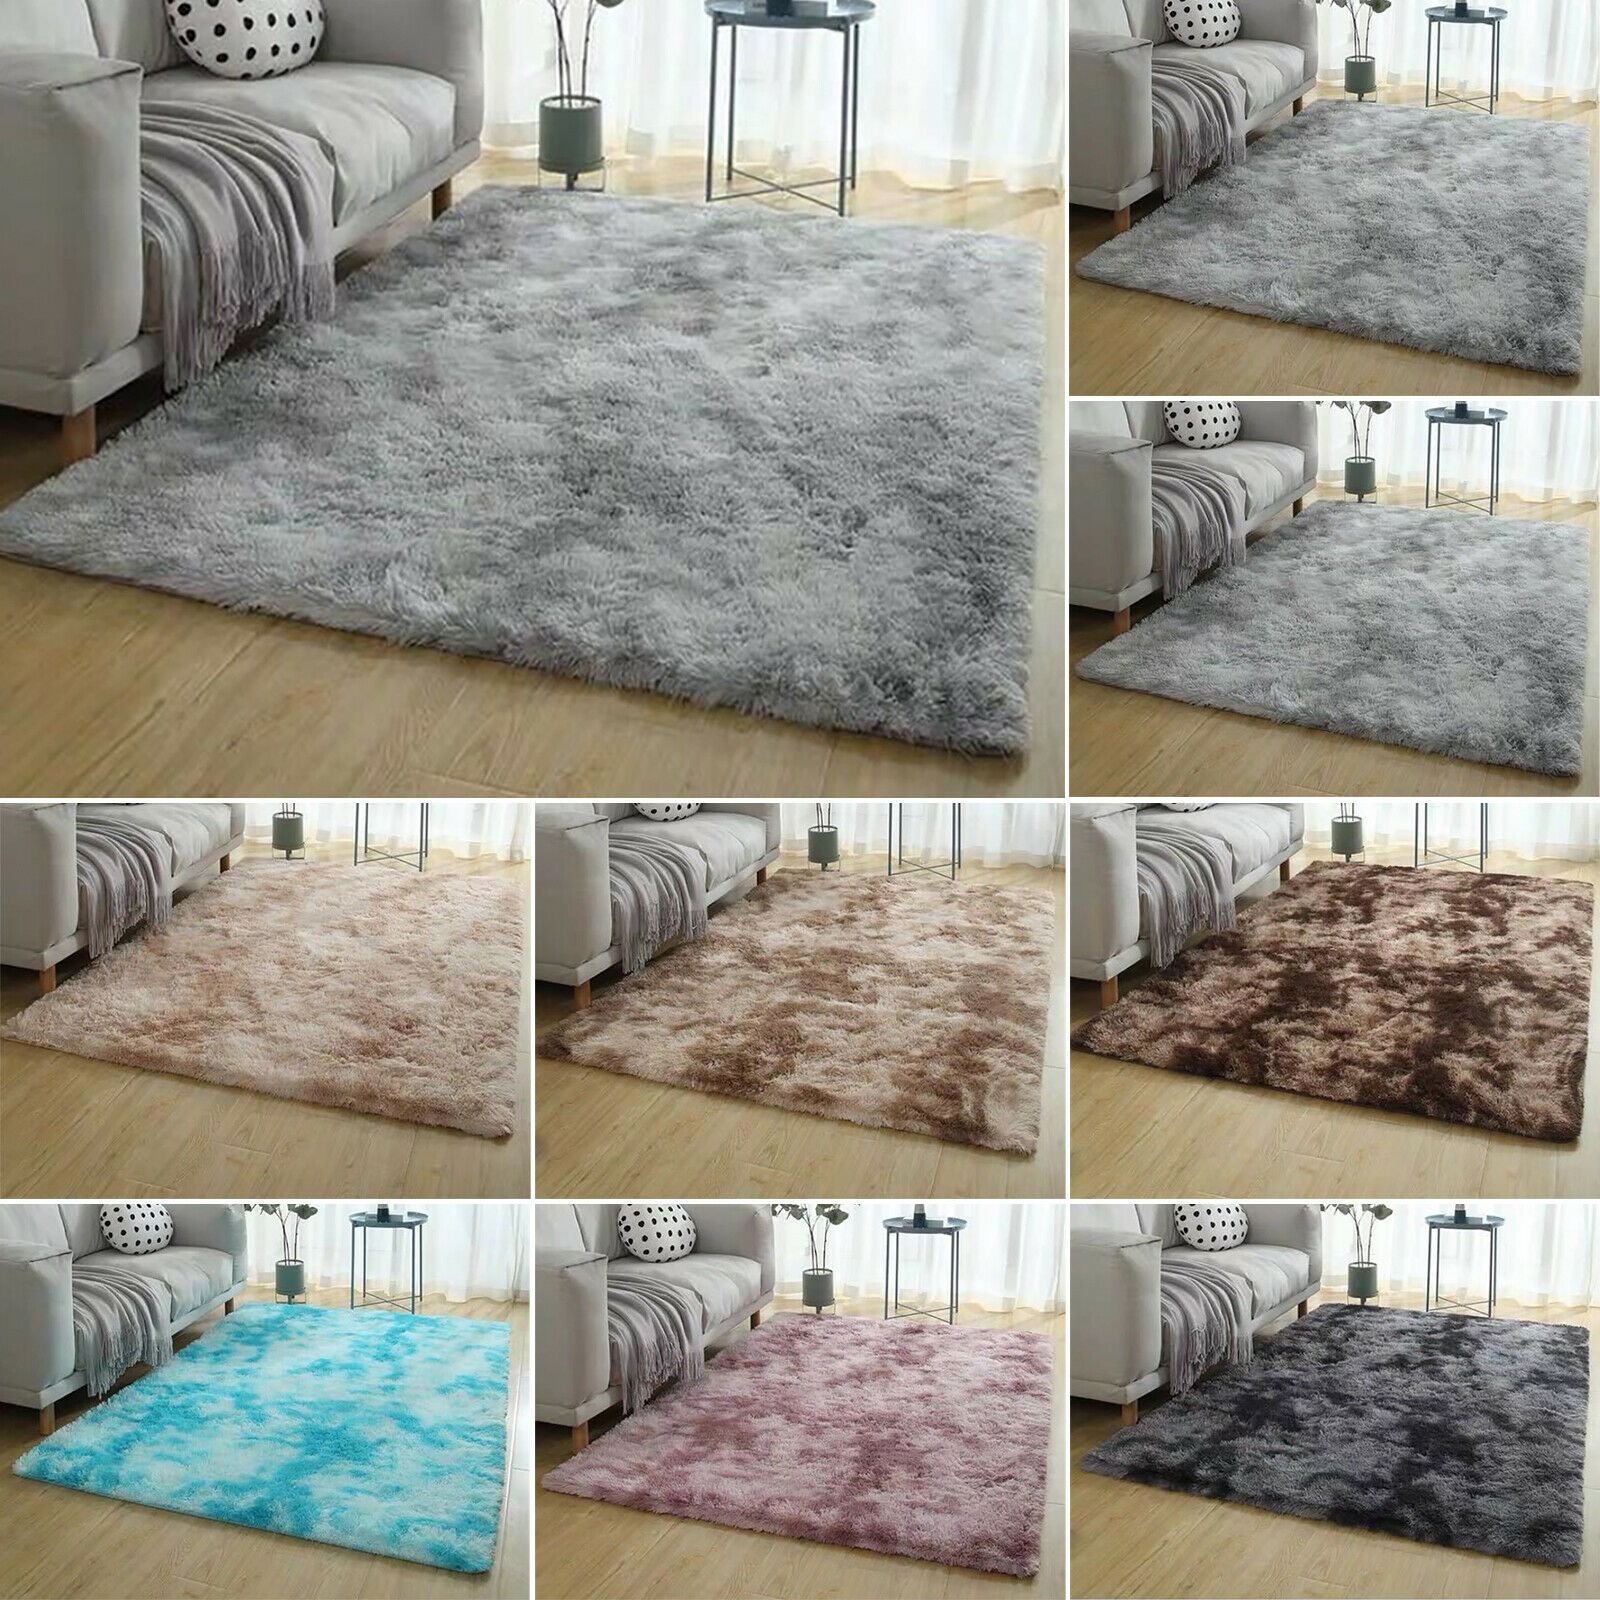 Shaggy Rugs Floor Carpet Living Room Bedroom Area Mat Soft Home Fluffy Large Rug 16 79 Area Rugs Ideas In 2020 Living Room Carpet Bedroom Carpet Bedroom Area Rug